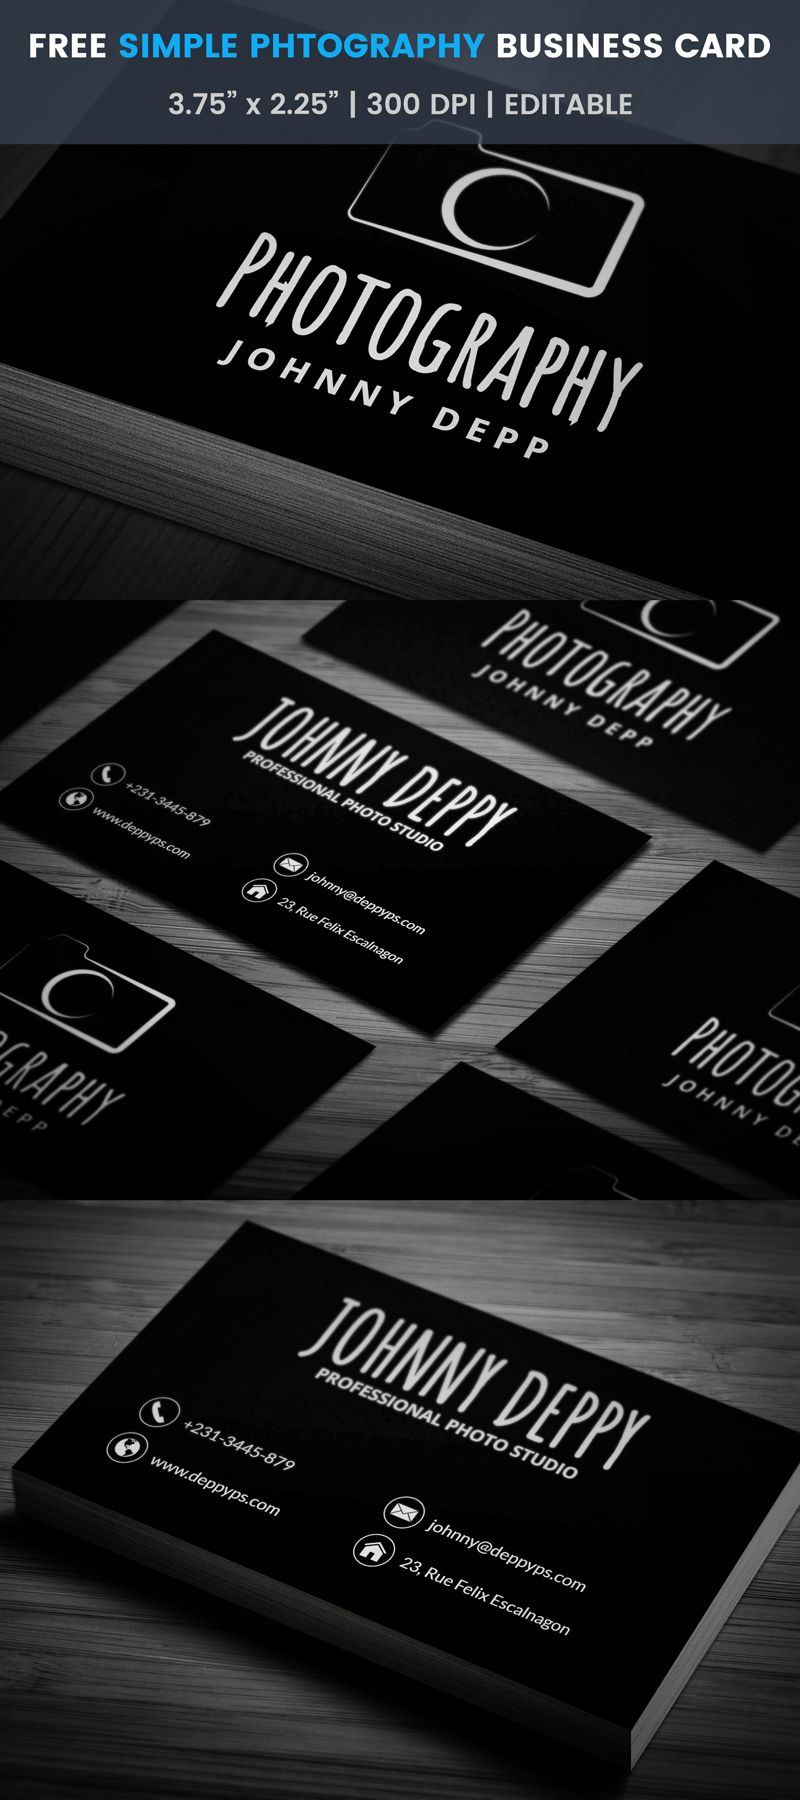 Retro one color photography business card template click free retro one color photography business card template click reheart Image collections